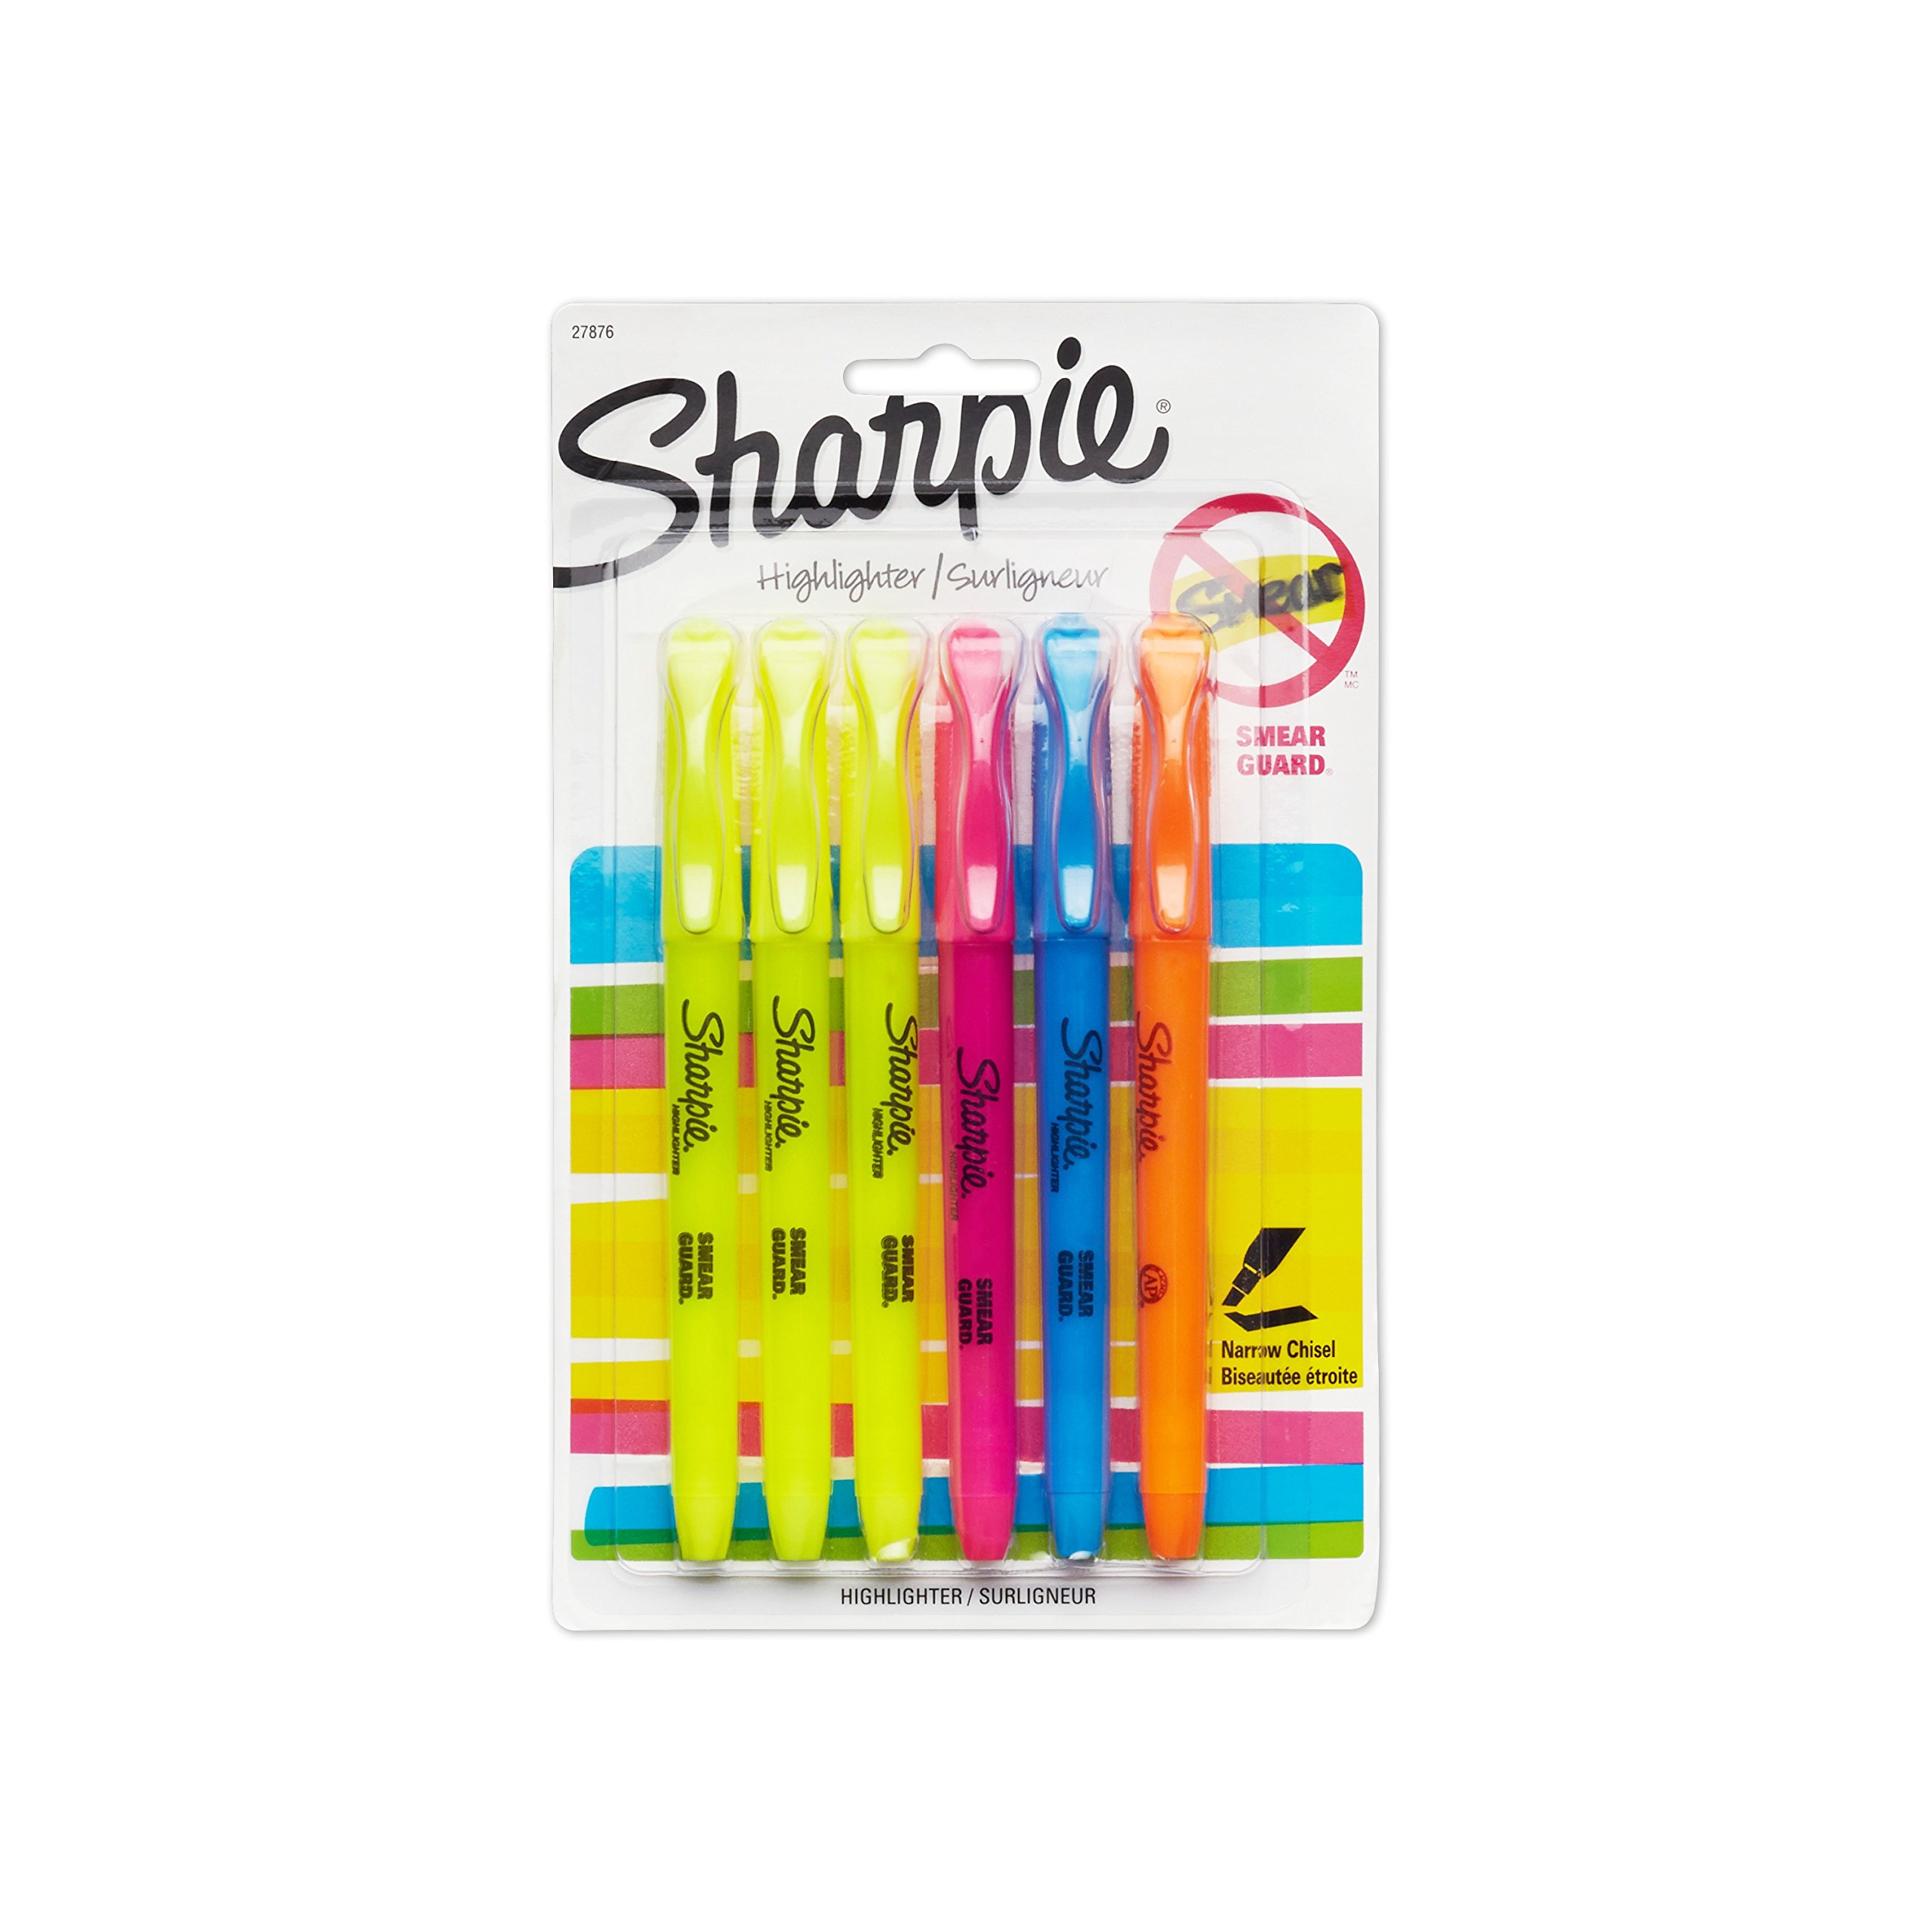 Sharpie Accent Pocket-Style Highlighters, 6 Colored Highlighters (27876PP)